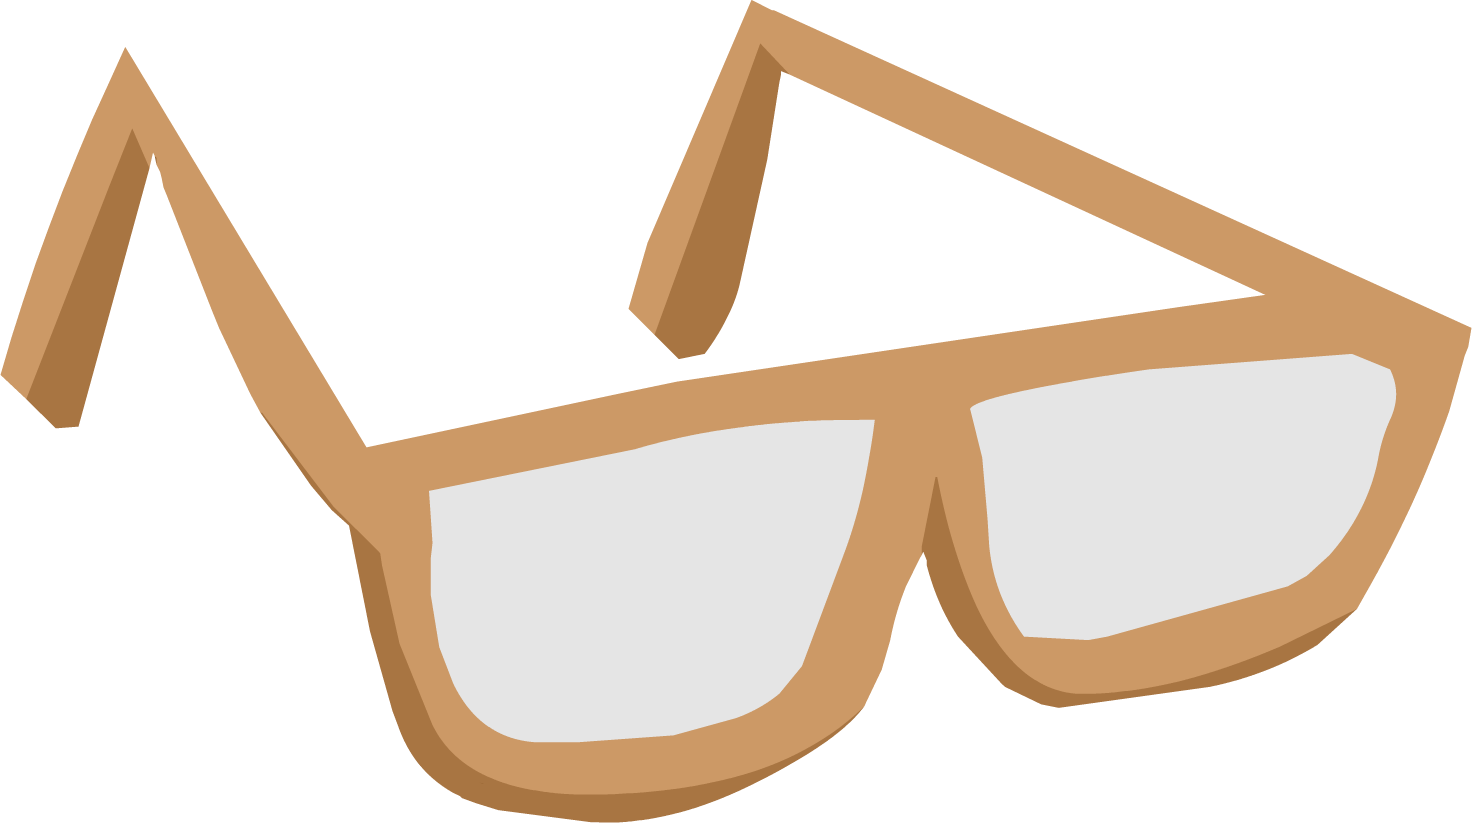 Sunglasses clipart small. Image brown glasses clothing